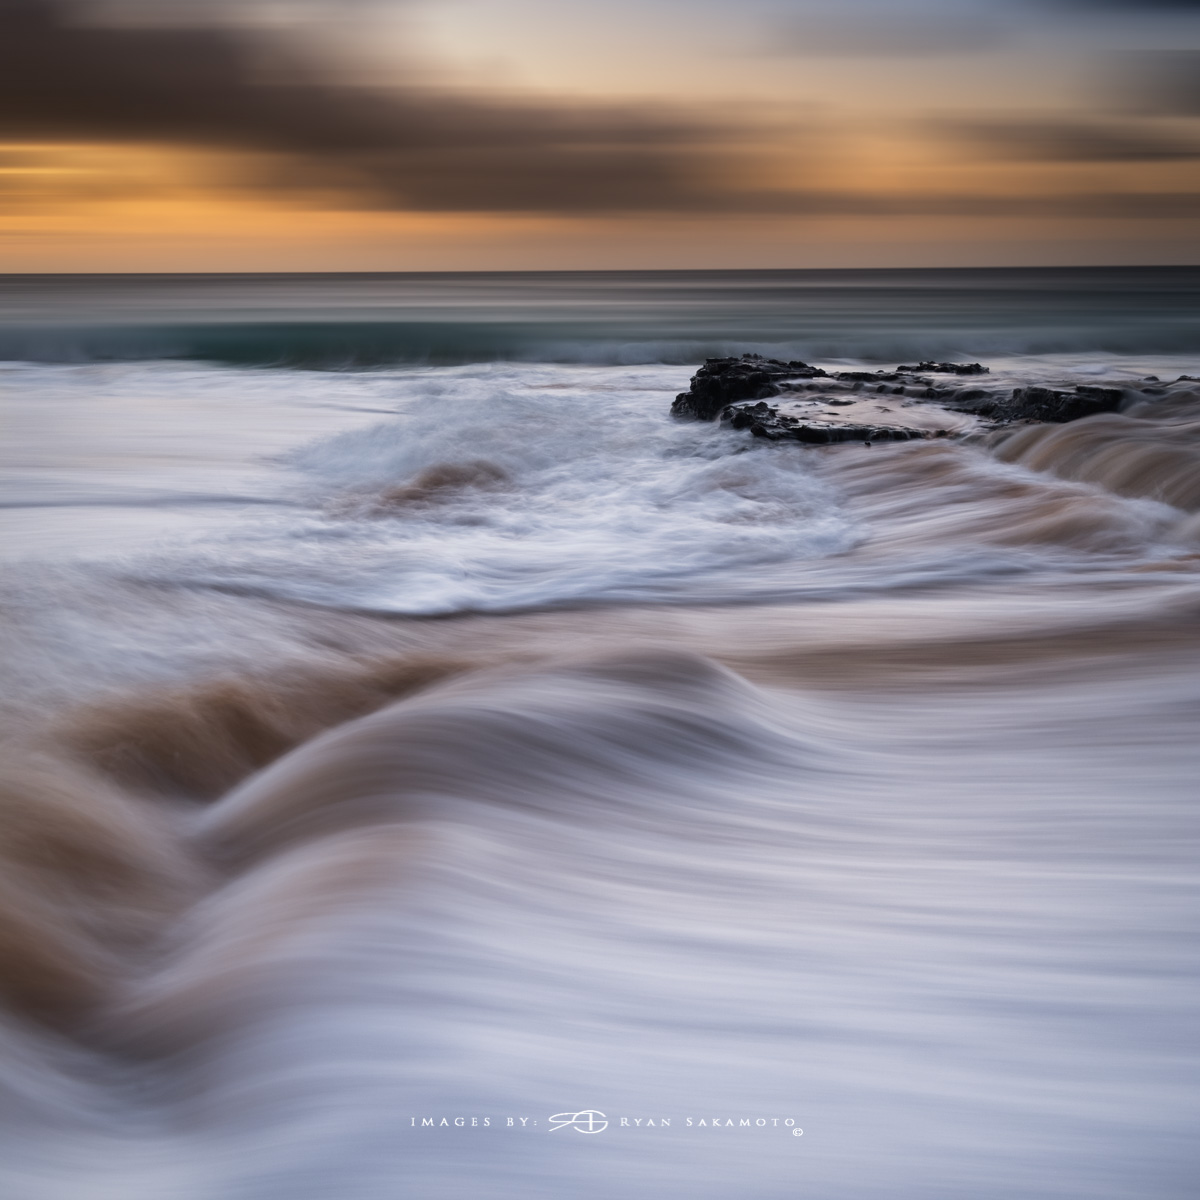 Sunrise from Sandy Beach Park, Honolulu, Hawaii  Fuji XT2    |    0.8 sec.    |    f/8   |   ISO 100 |   Fujinon XF 10-25mm F/4 R OIS    BREAKTHROUGH PHOTOGRAPHY X4 stacked filters, 3-stop soft 100x150mm GND, 3-stop hard reverse 100x150 Grad & 6-stop 100mm ND  Edited in Lightroom Classic CC 2018 Copyright 2017 Ryan Sakamoto, All rights reserved